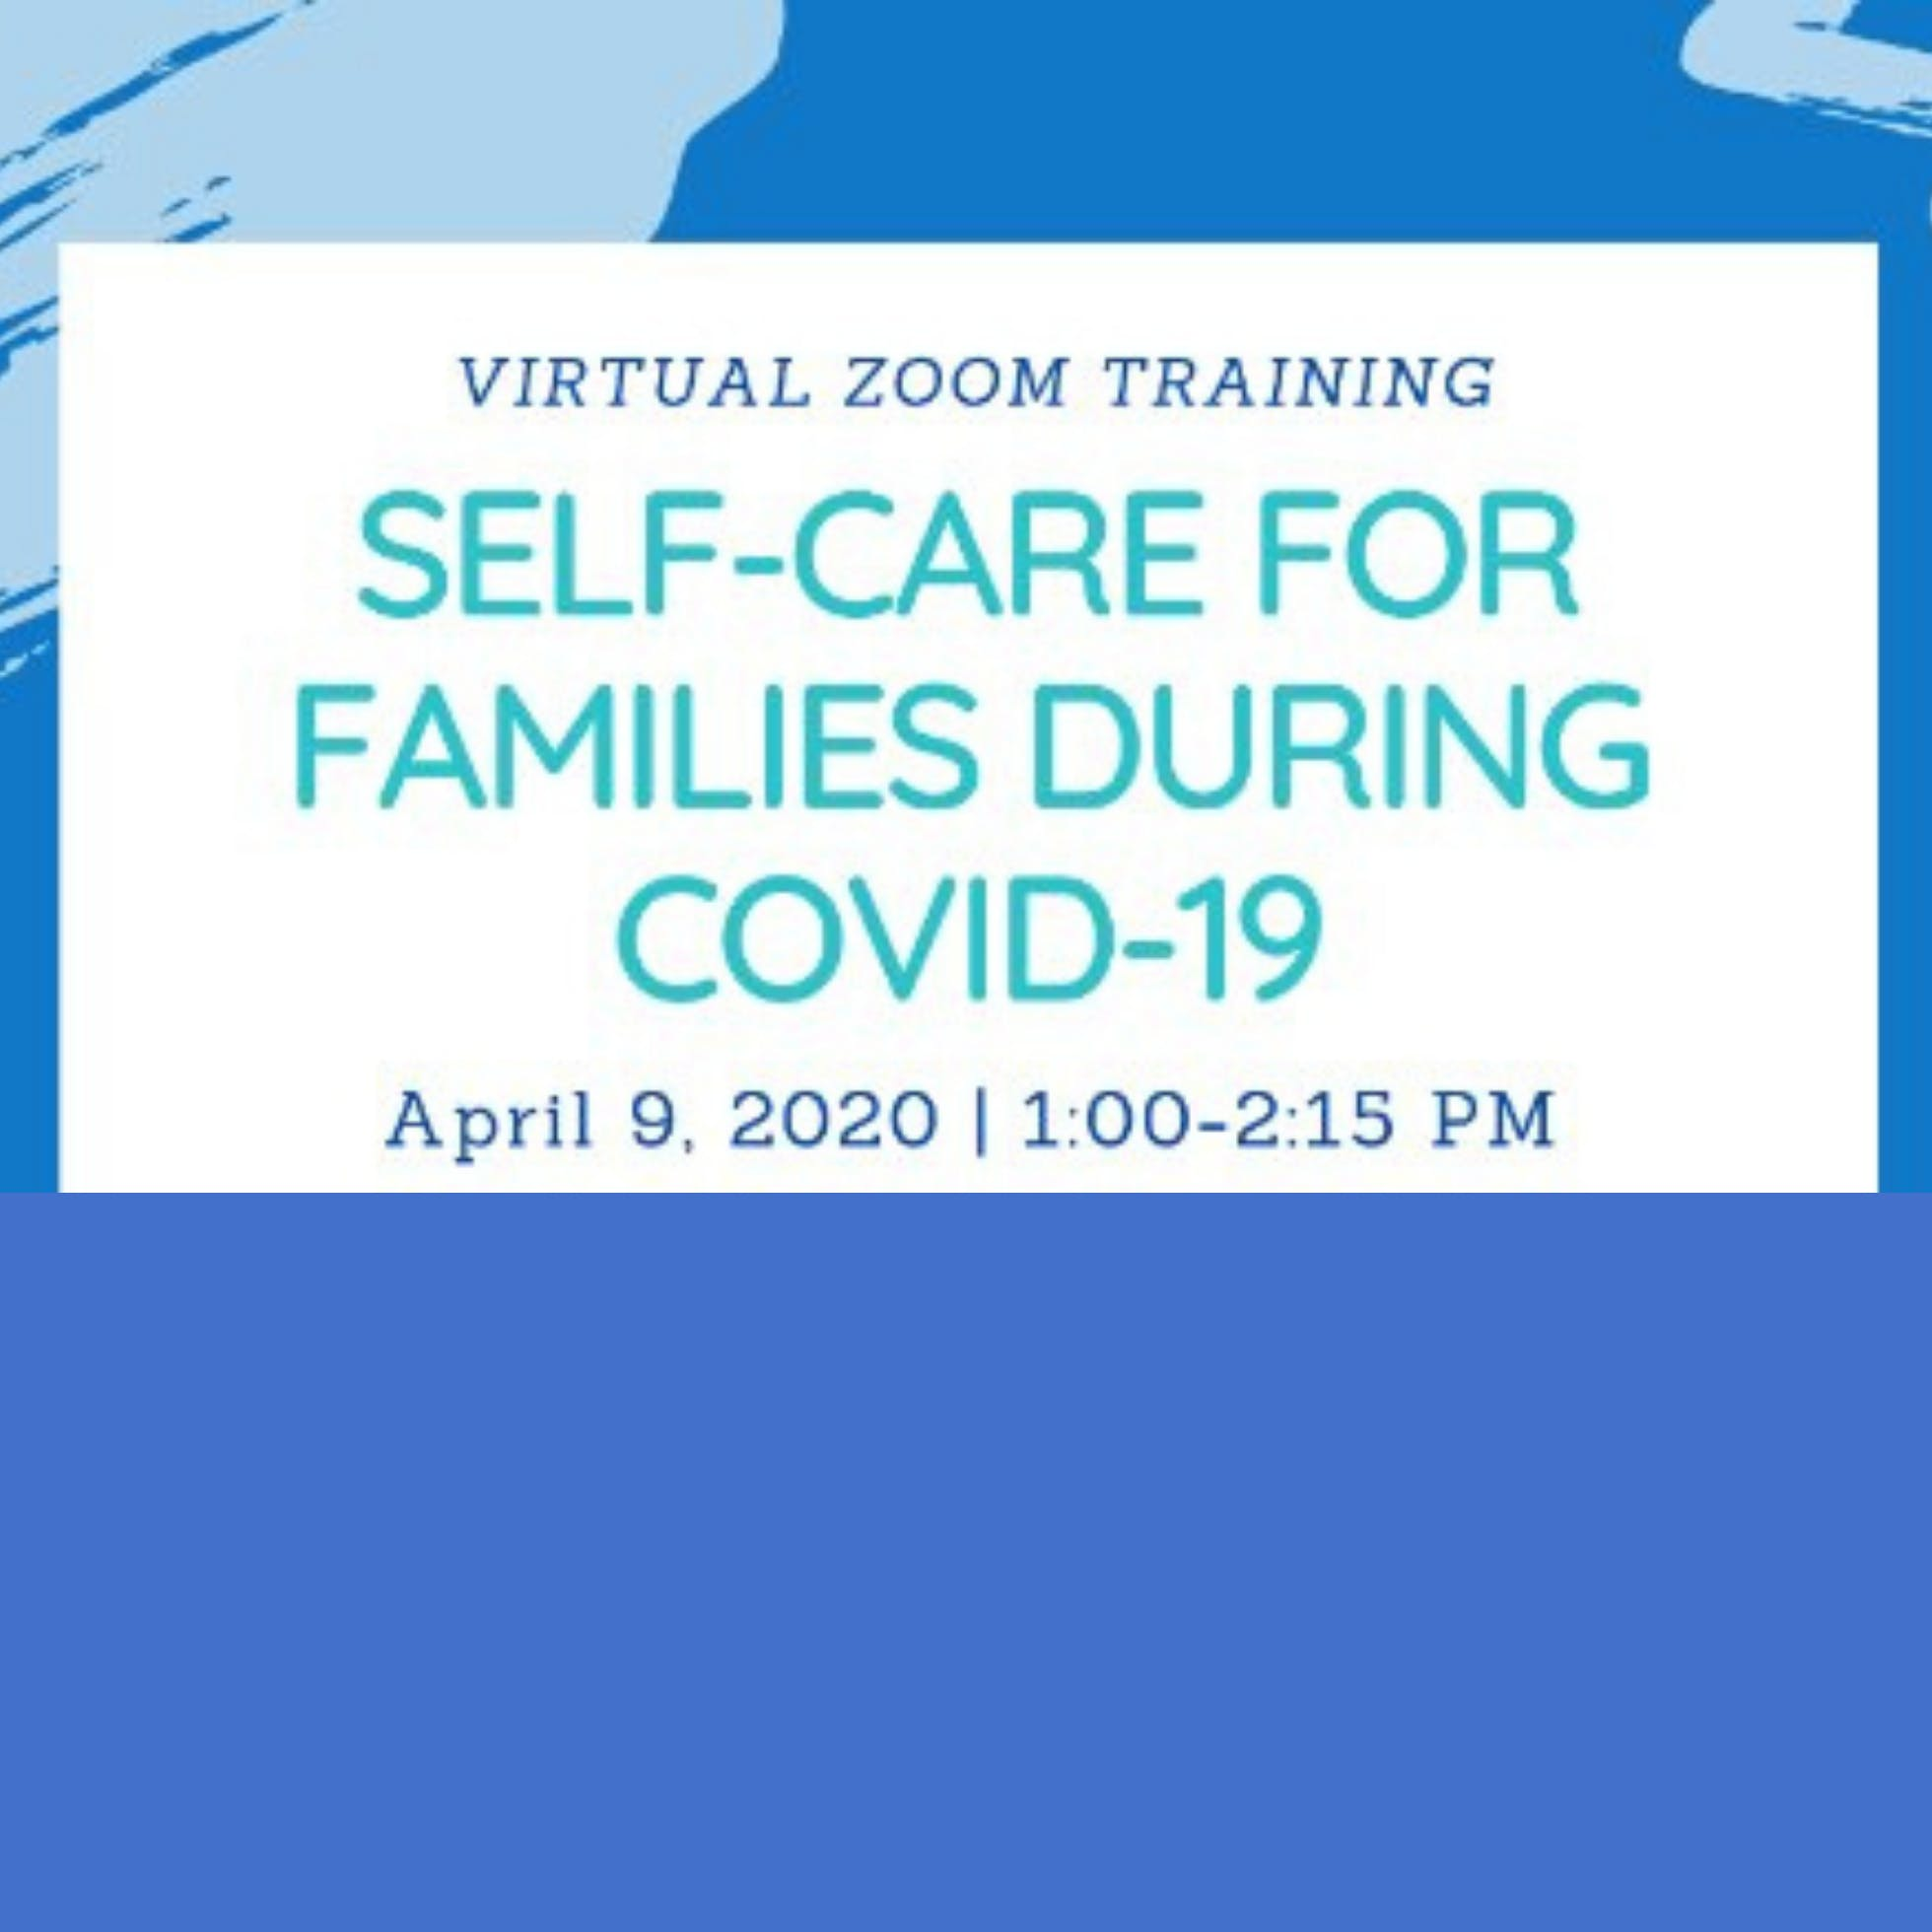 Self-Care For Families During COVID-19